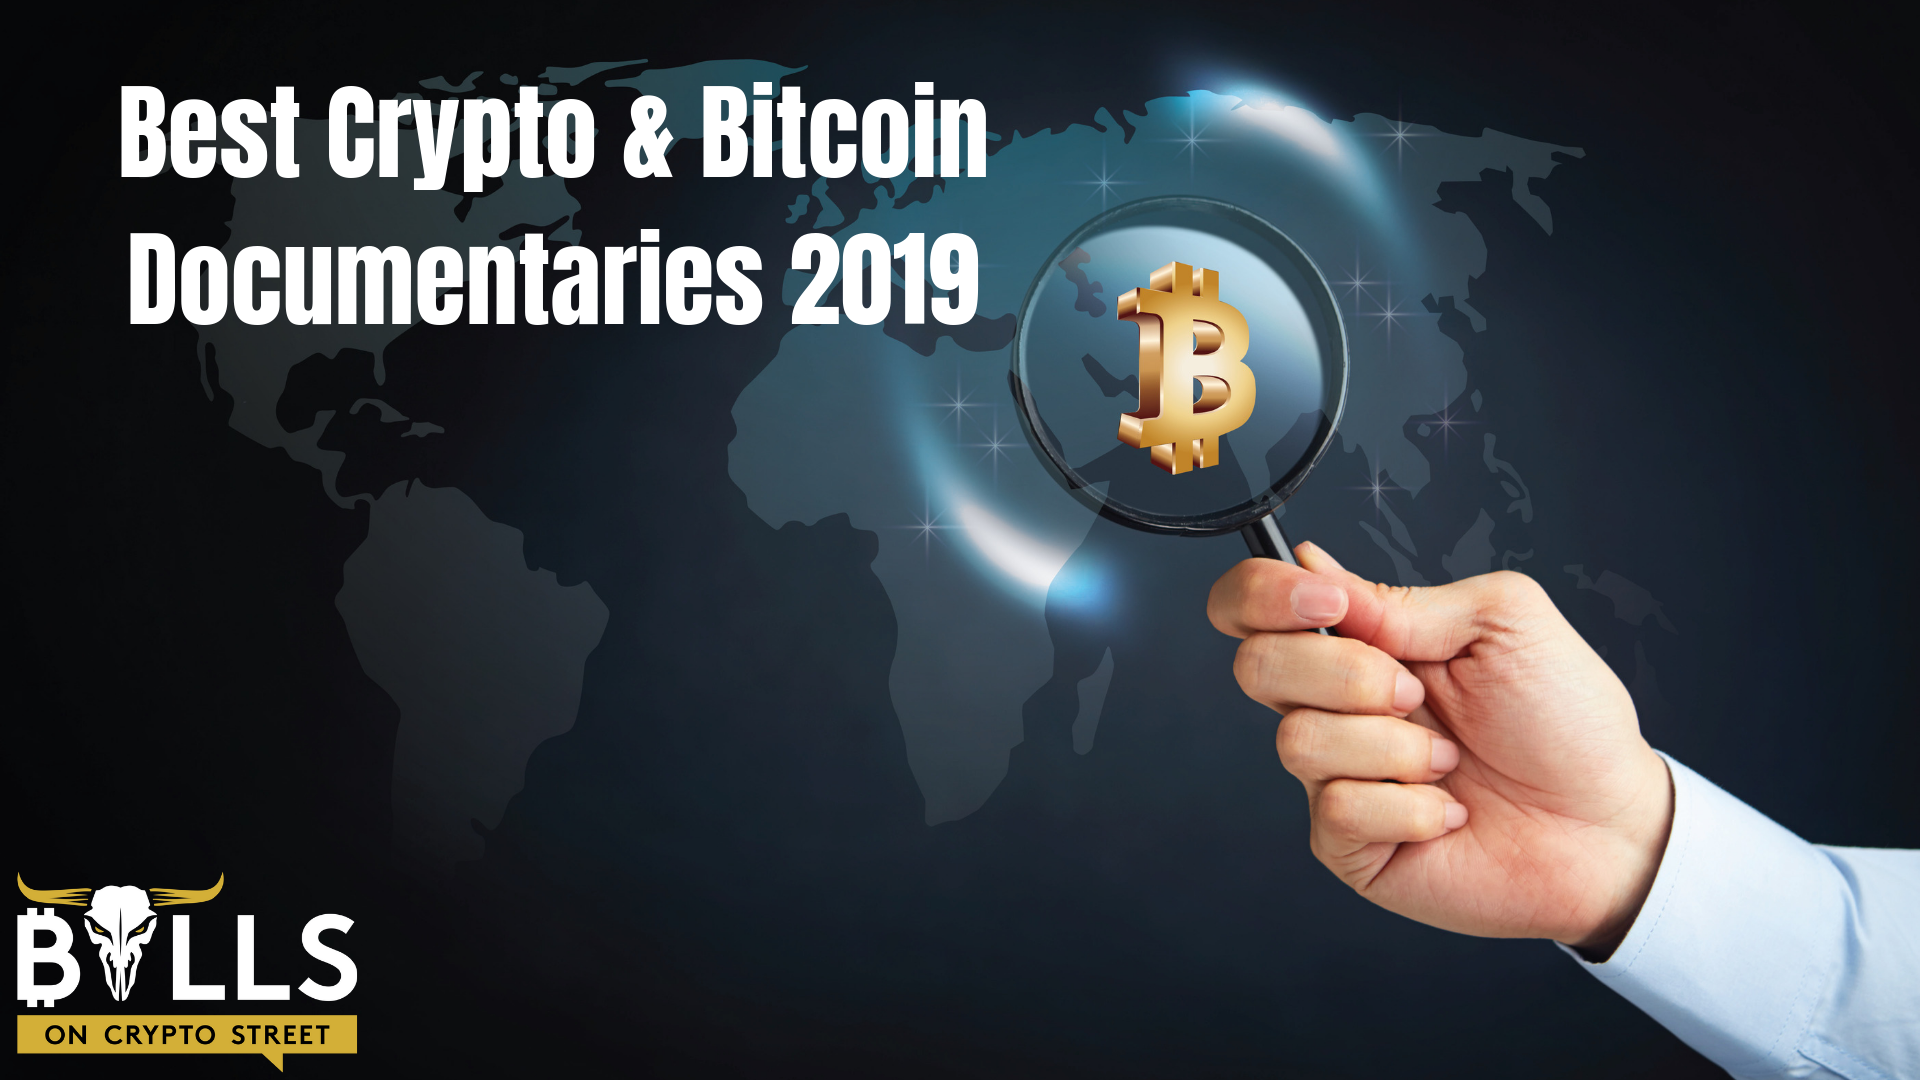 The 5 Best Crypto & Bitcoin Documentaries 2019